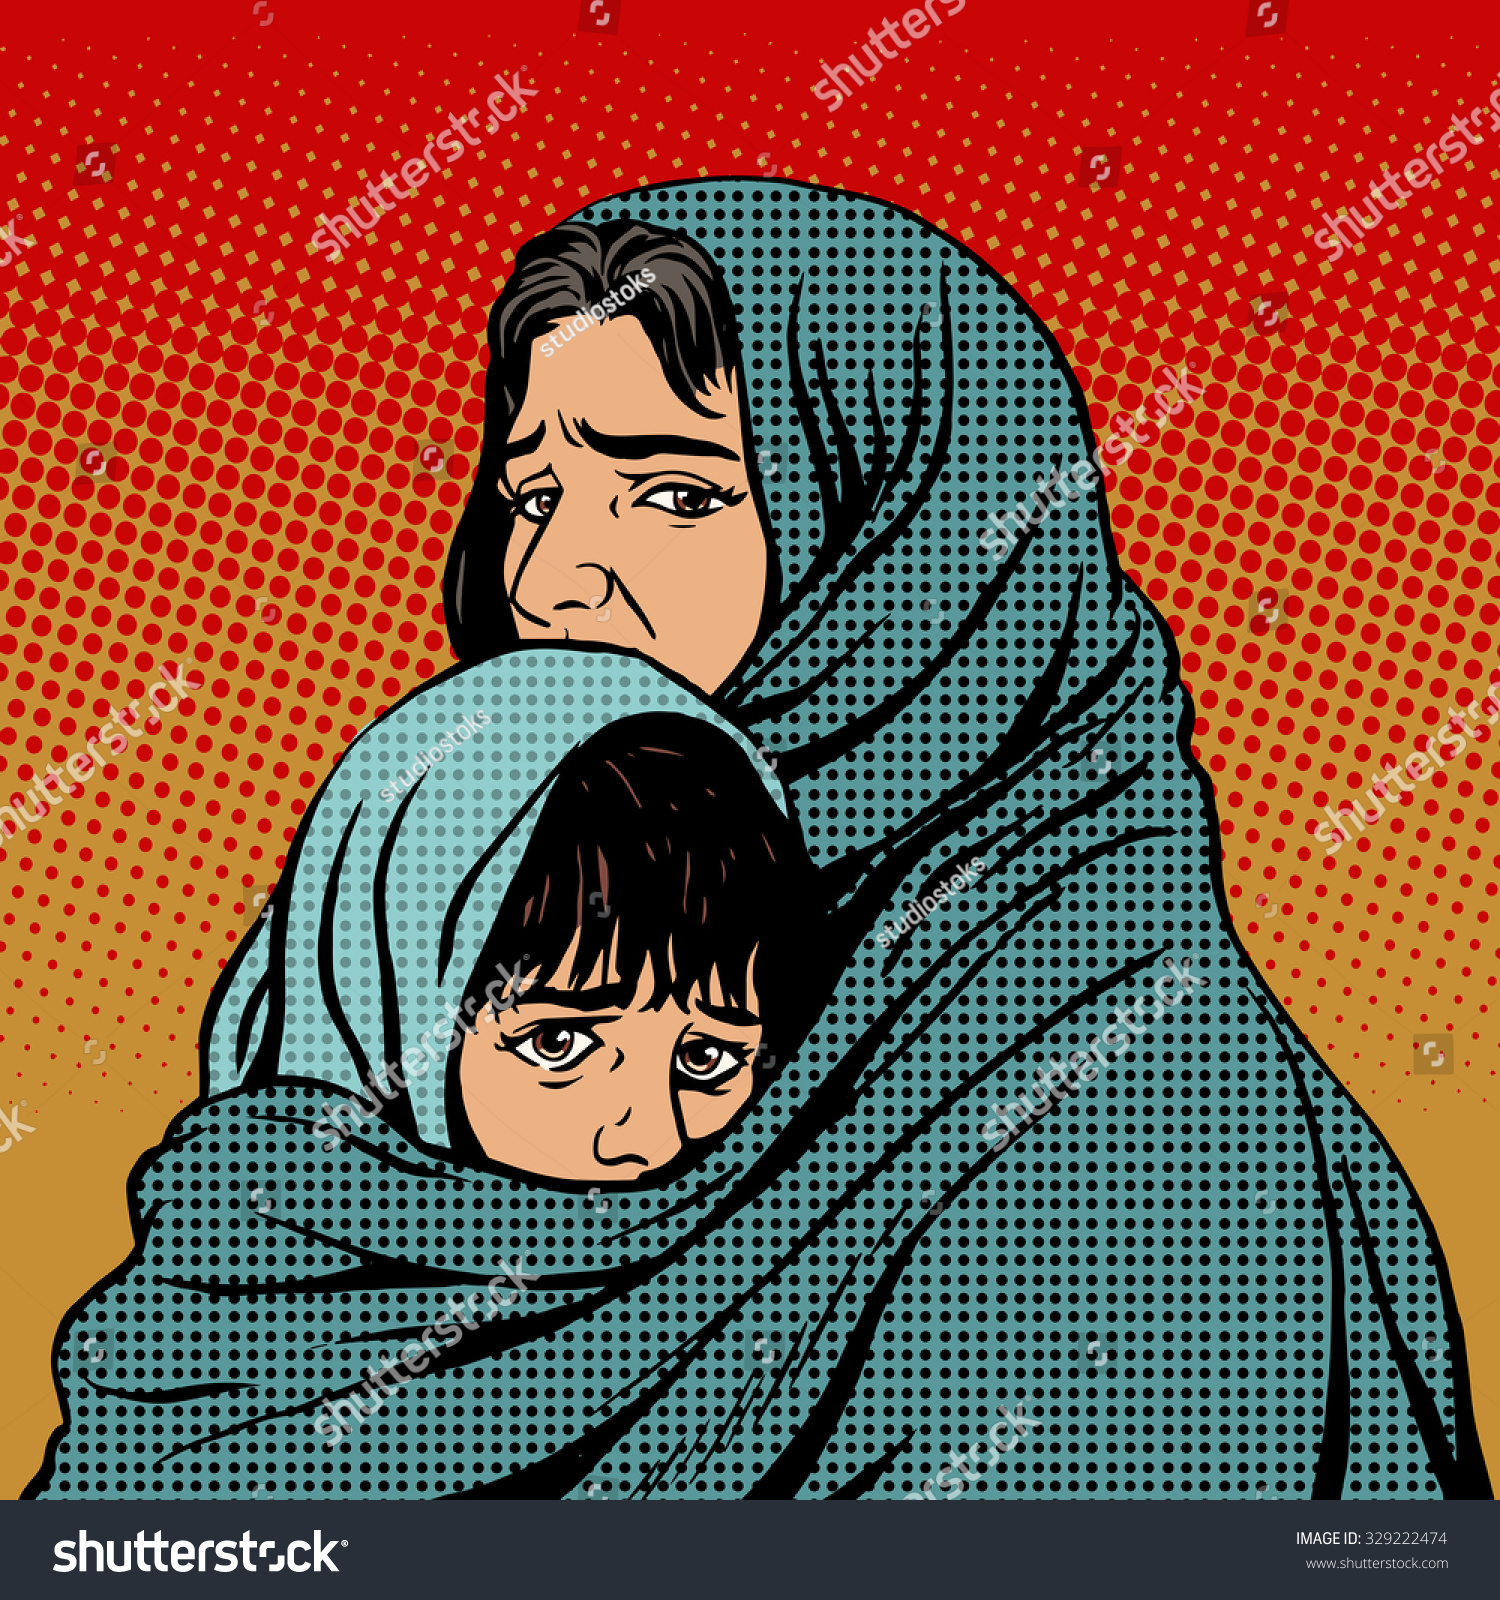 refugee mother and child essay